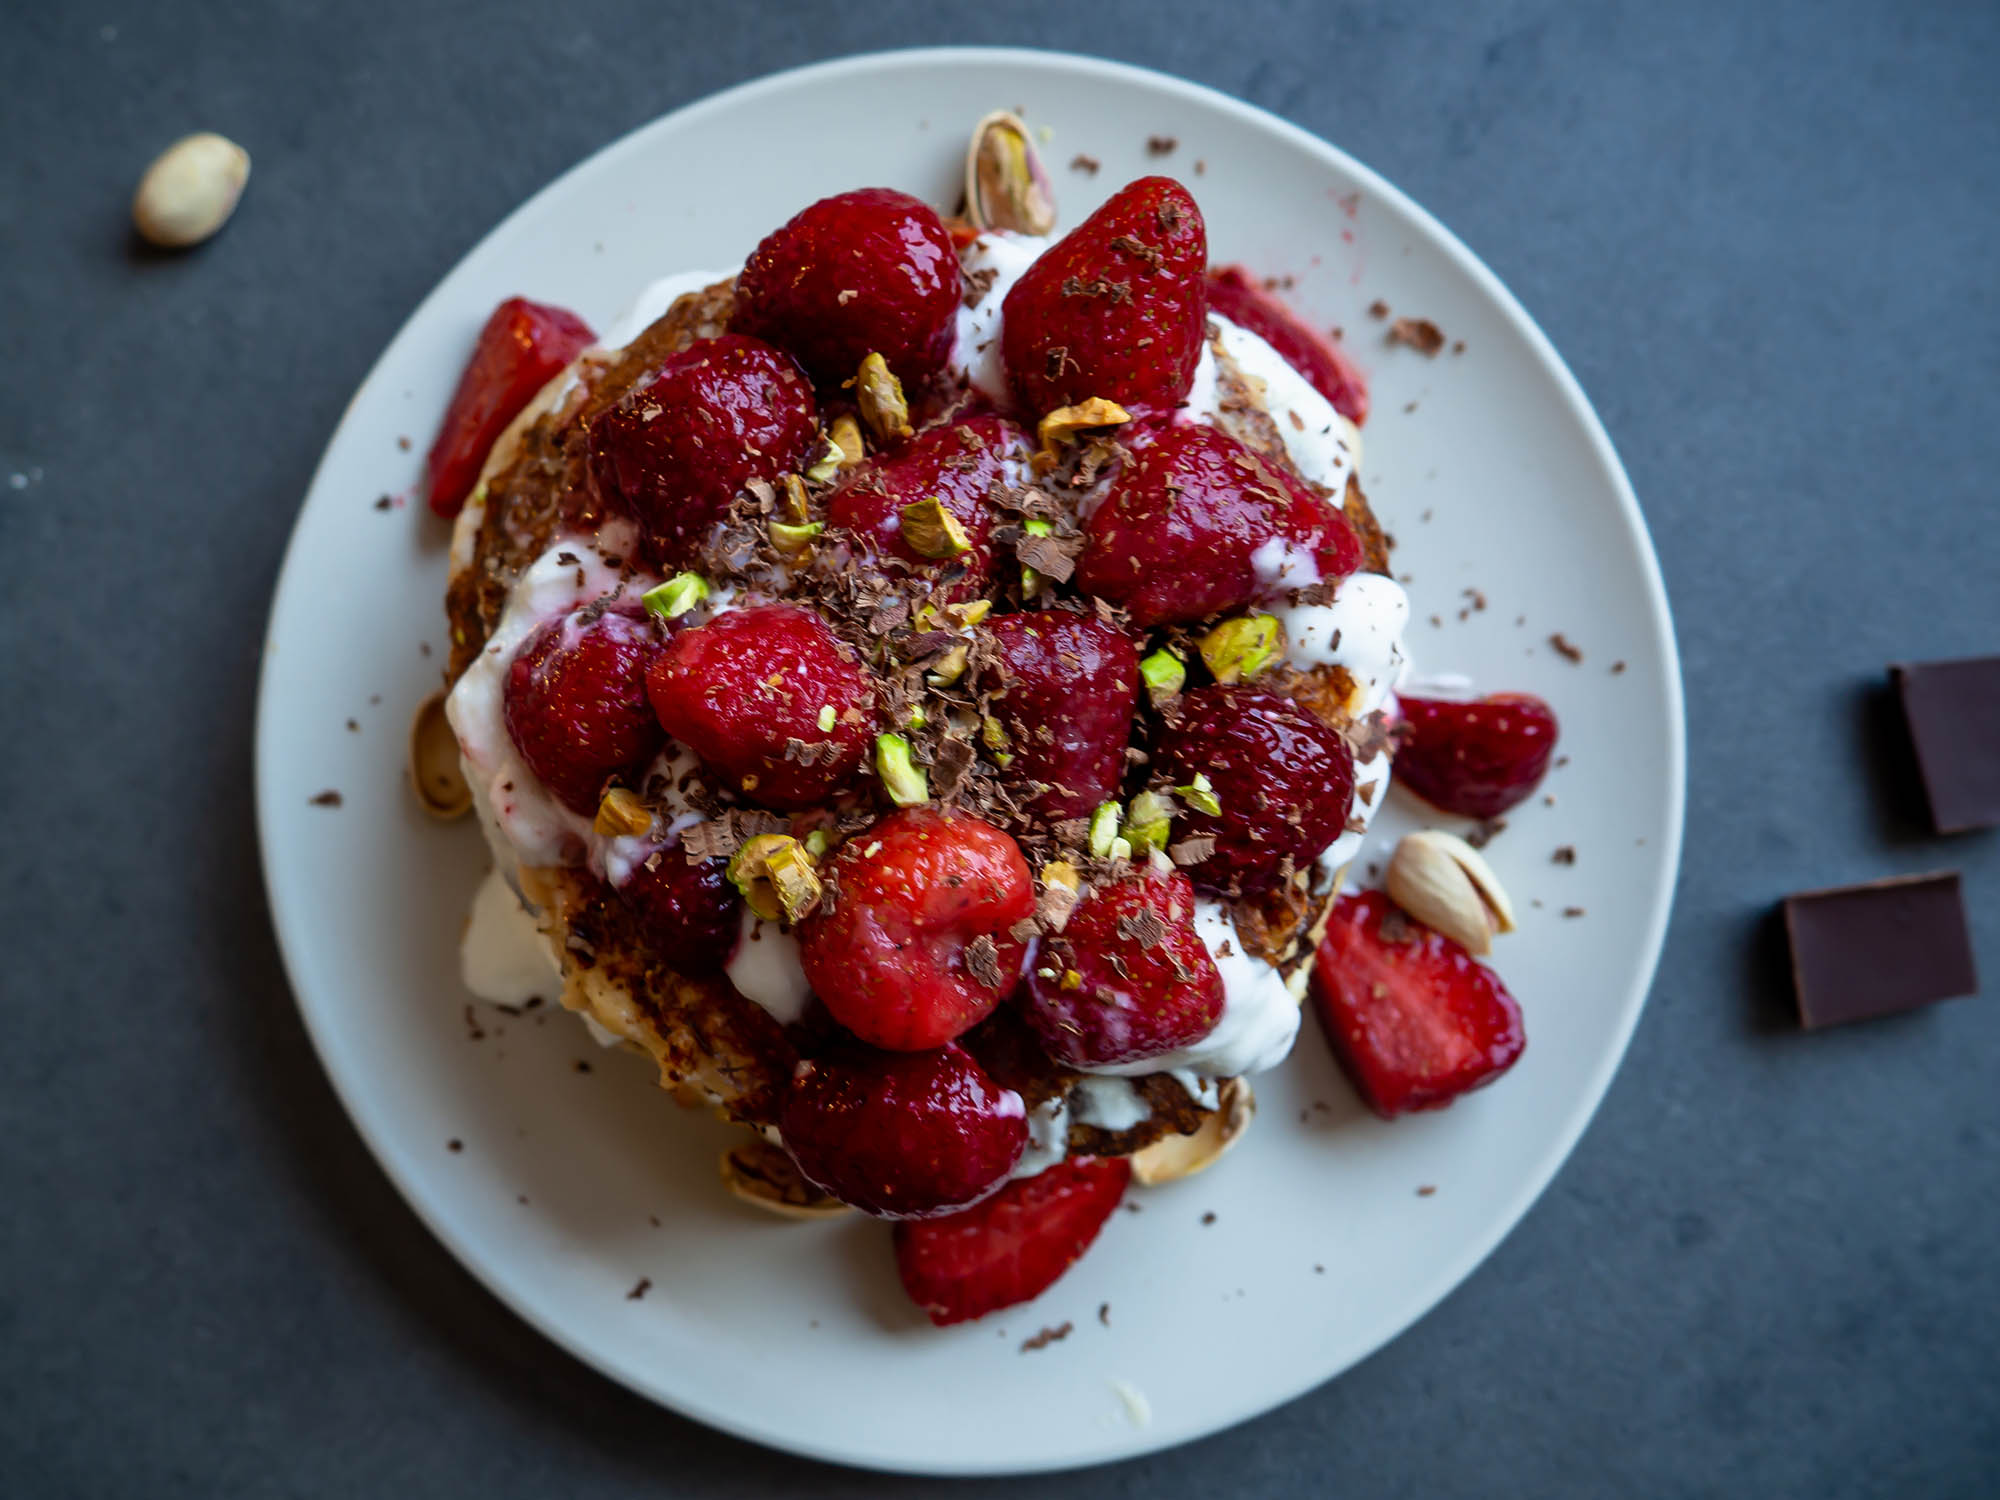 Cottage Cheese Pancakes With Strawberries and Pistachios